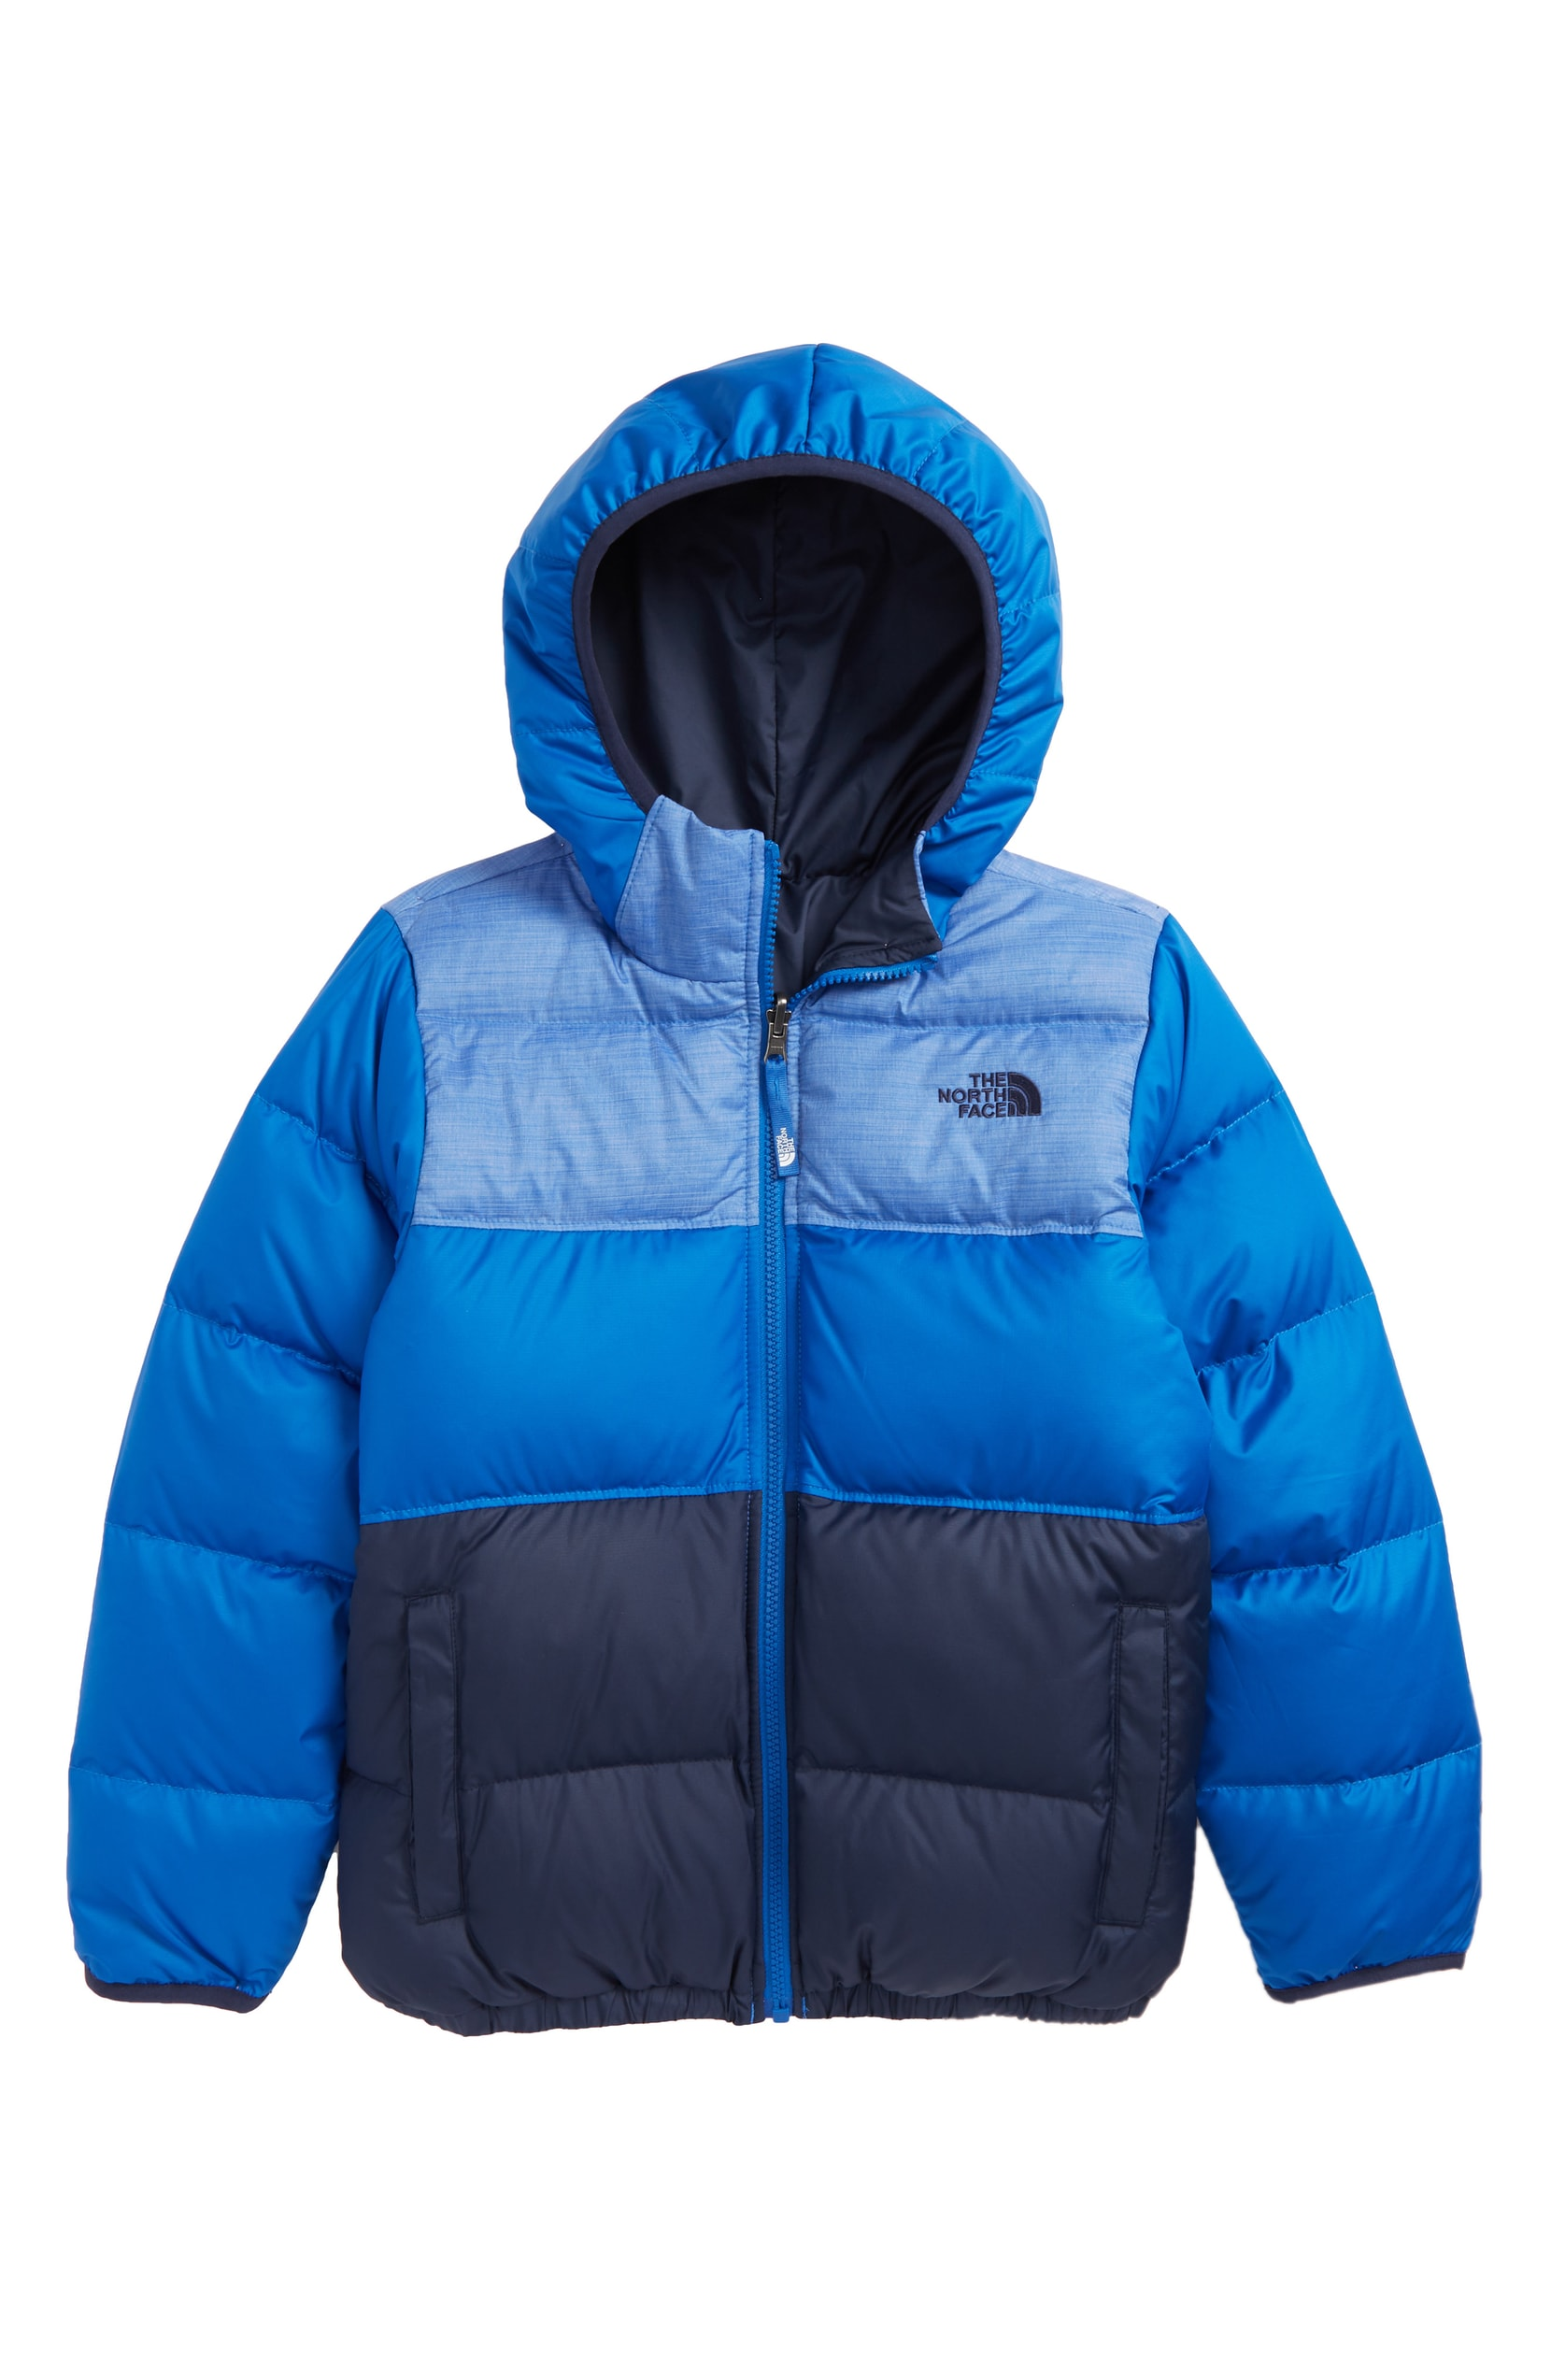 Reversible Down Jacket. Sale: $110.90 / After Sale: $149.00. (Image: Nordstrom){ }